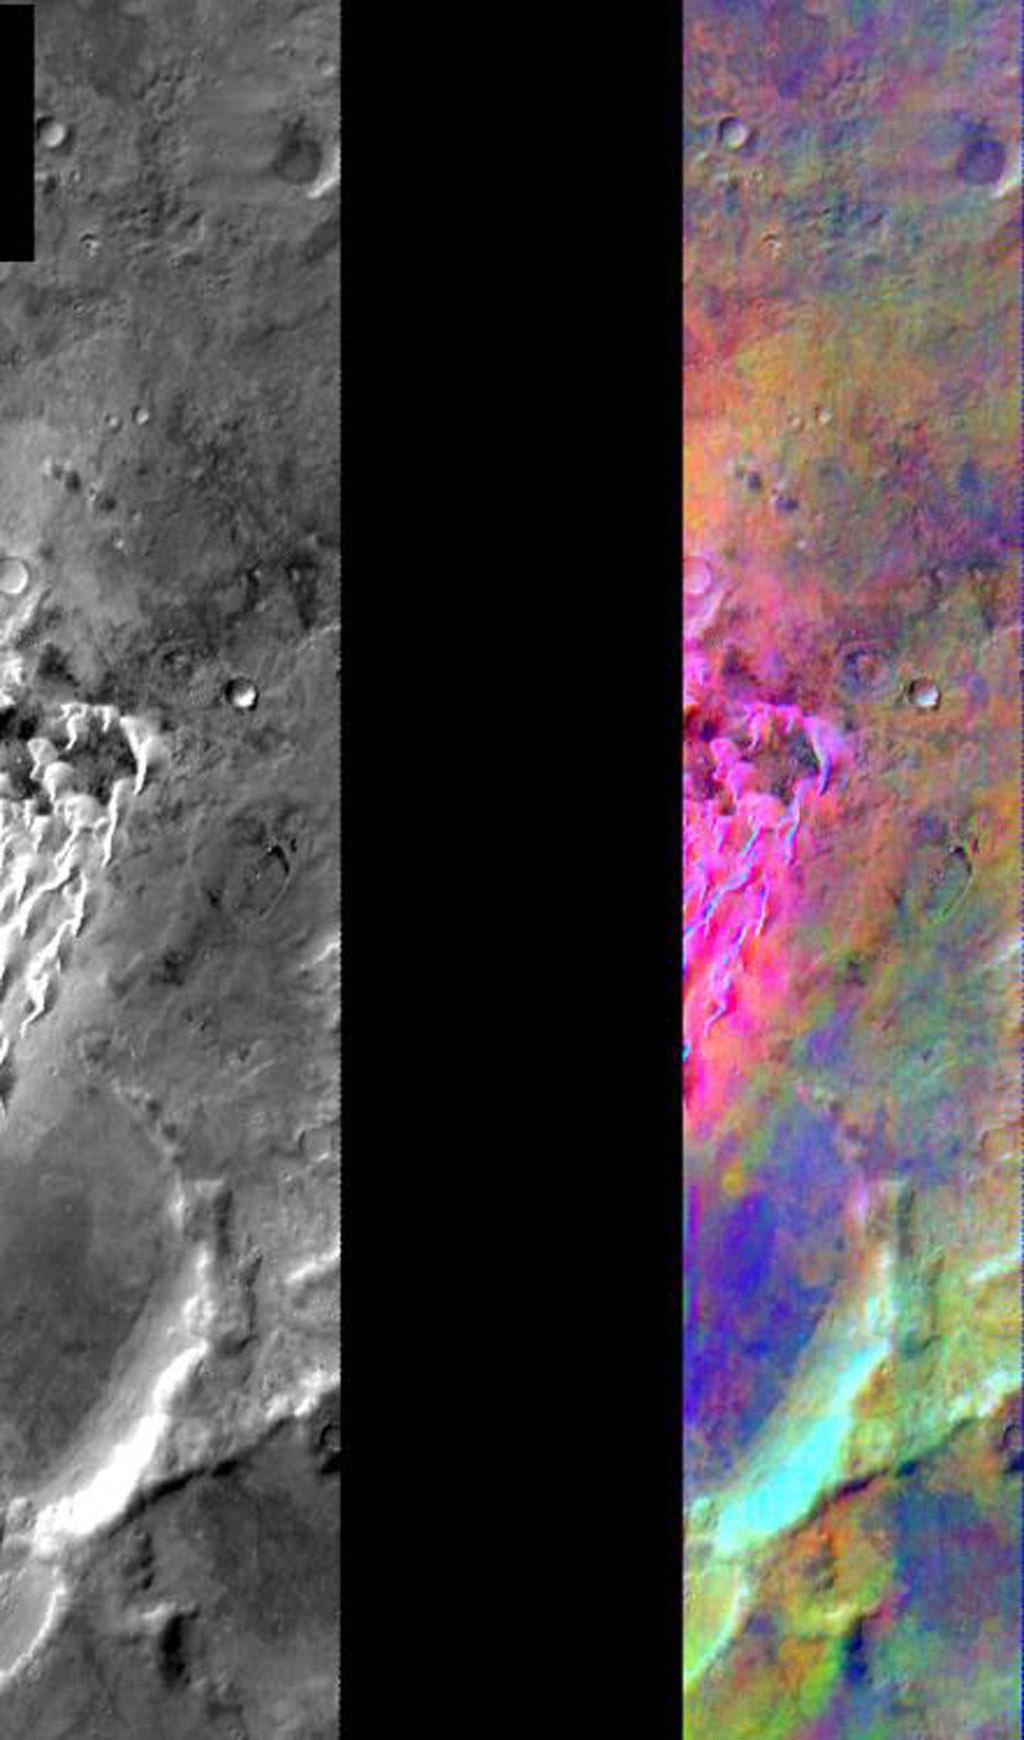 This image released on July 28, 2004 from NASA's 2001 Mars Odyssey shows a decorrelation stretch near Kaiser Crater. Pink/magenta colors usually represent basaltic dunes, cyan indicates the presence of water ice clouds, while green can represent dust.